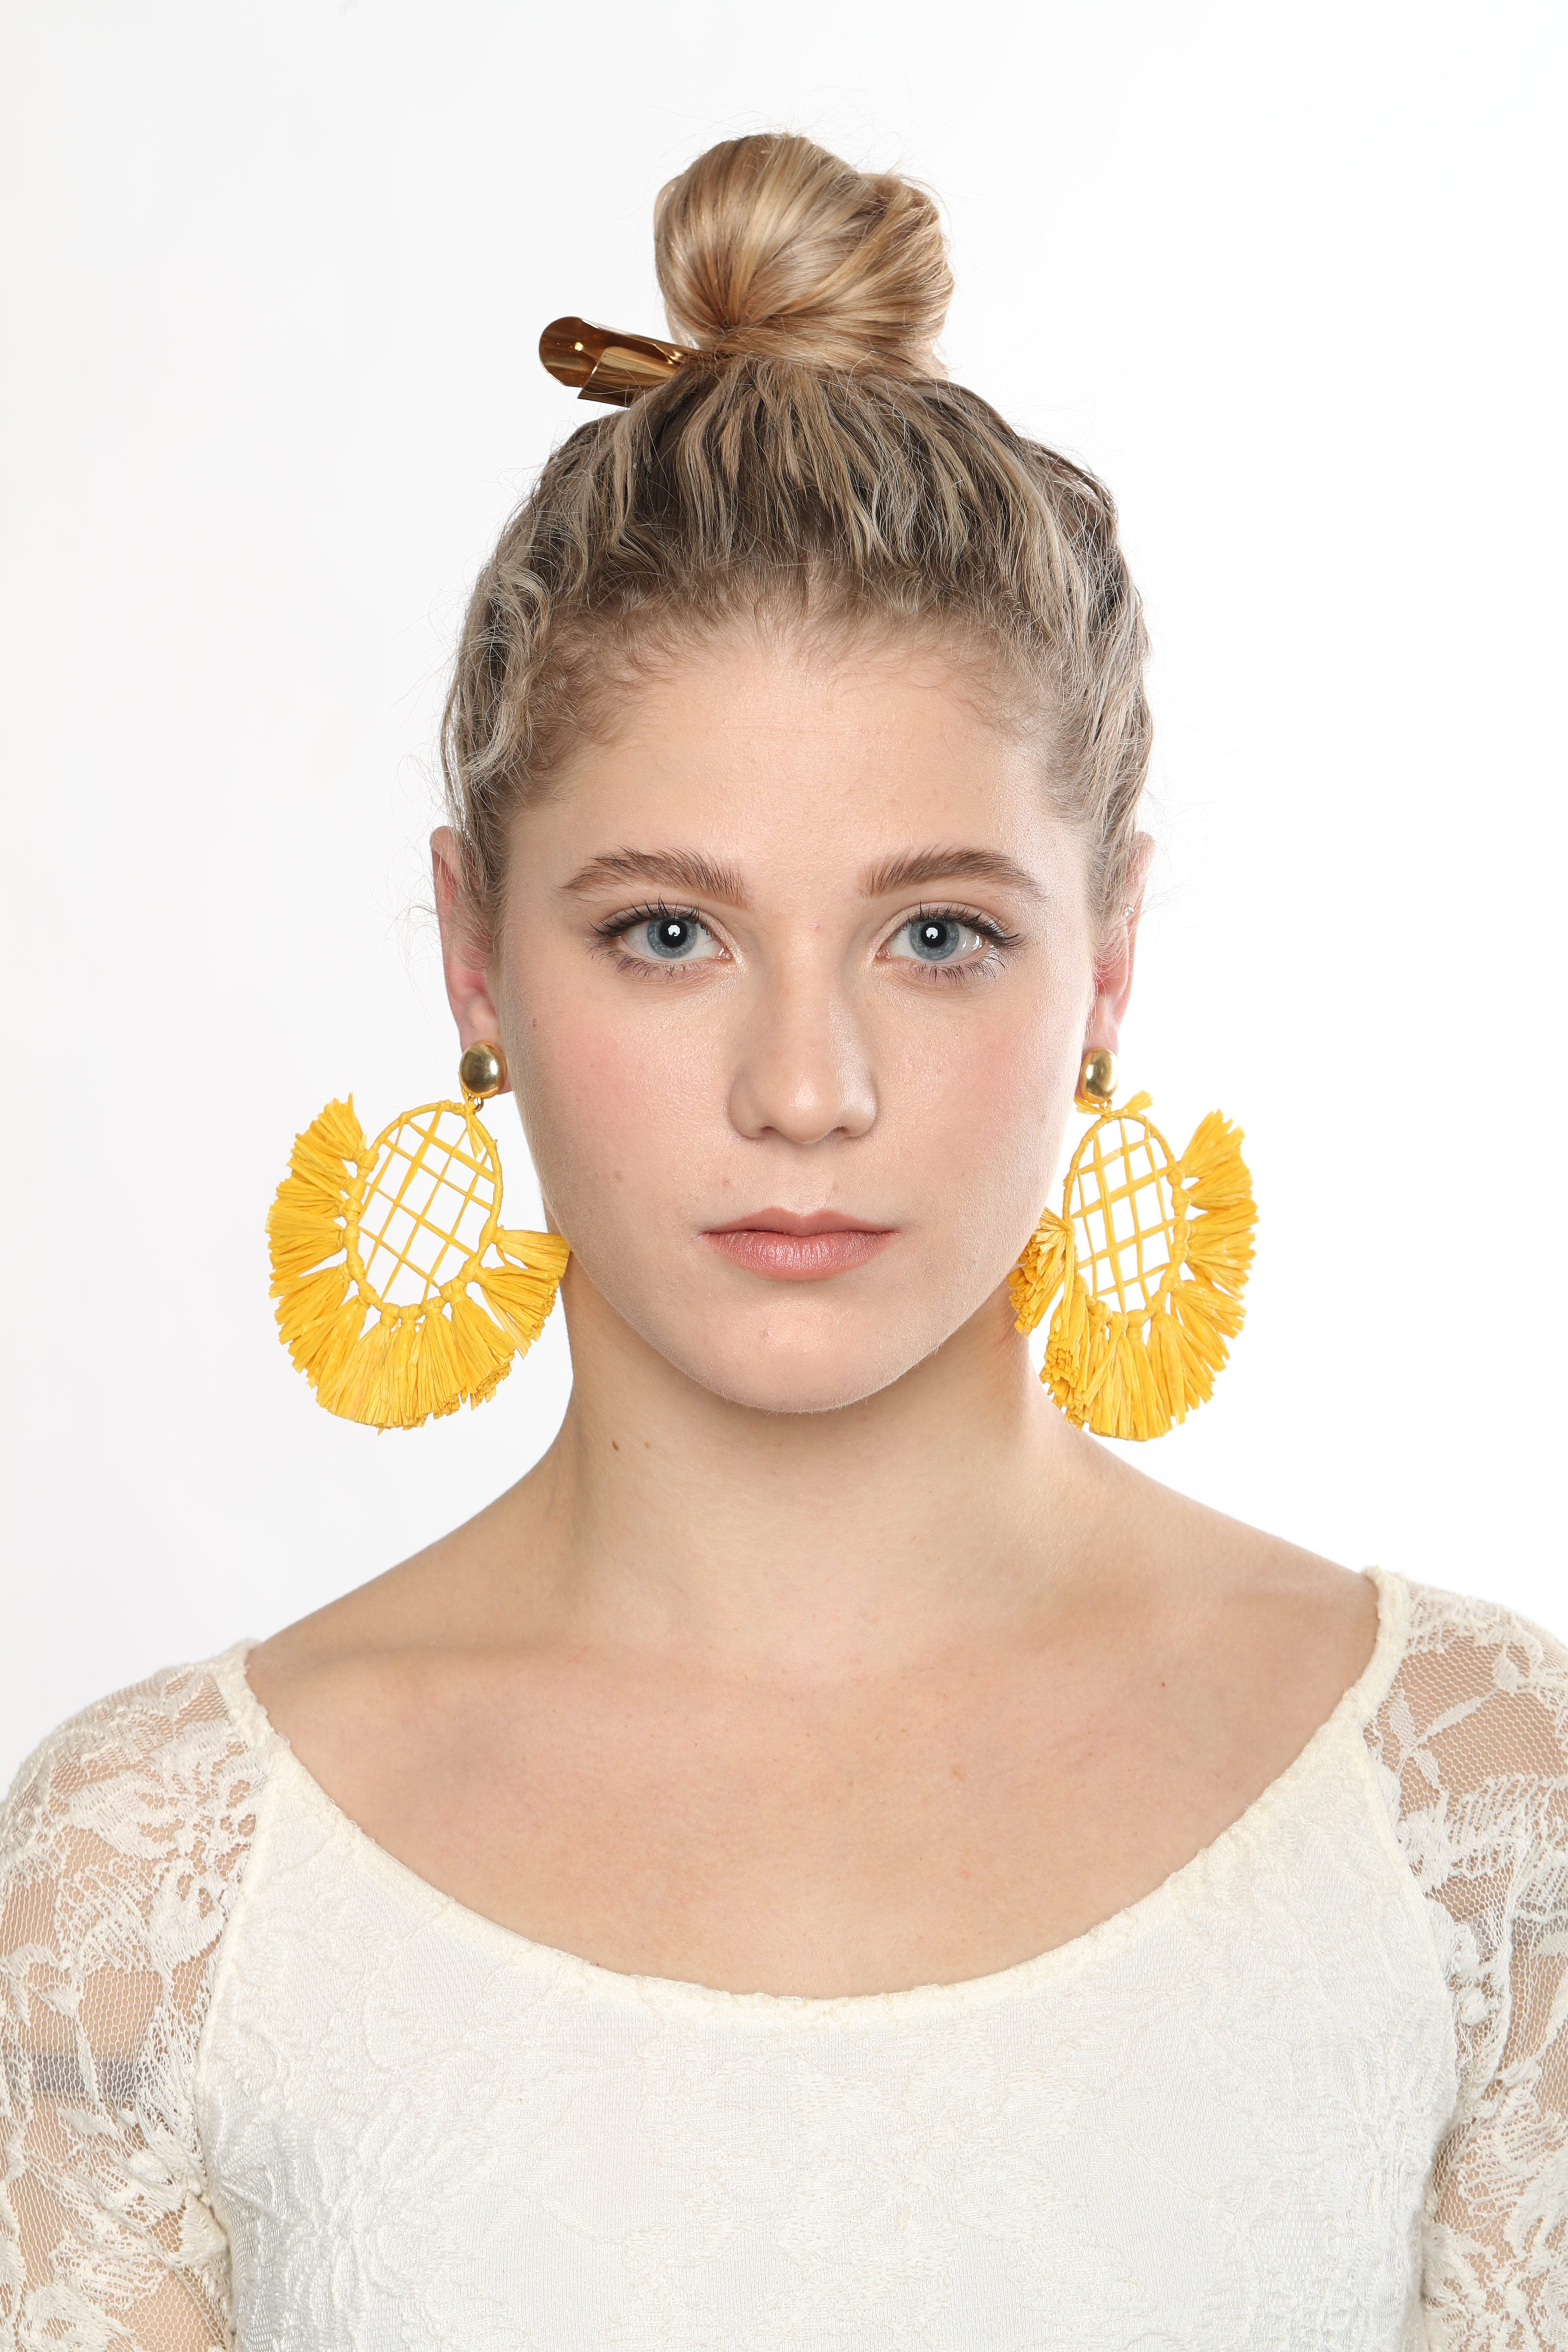 Esprit Libre Yellow Statement Earrings - De Bawa Inc.